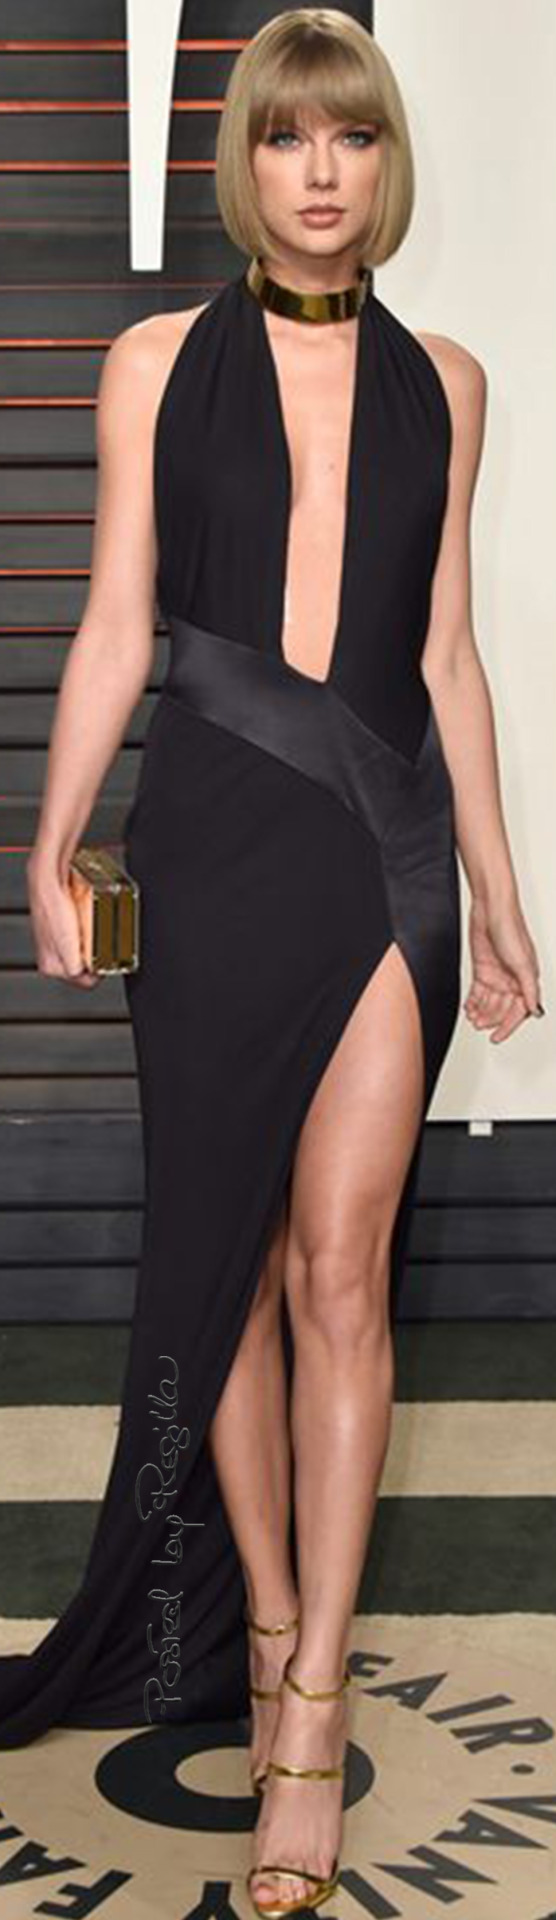 Regilla ⚜ Taylor Swift wearing an Alexandre Vauthier Black Halter Dress from the Spring 2013 Couture Collection